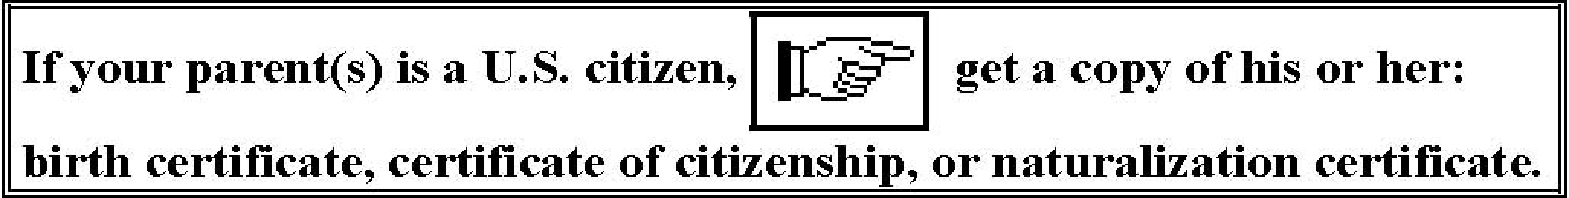 If one or both of your parents was a U.S. citizen when you were born, you might be a U.S. citizen. In answering this question, remember your parent(s) could be U.S. citizen(s) under any of the types of U.